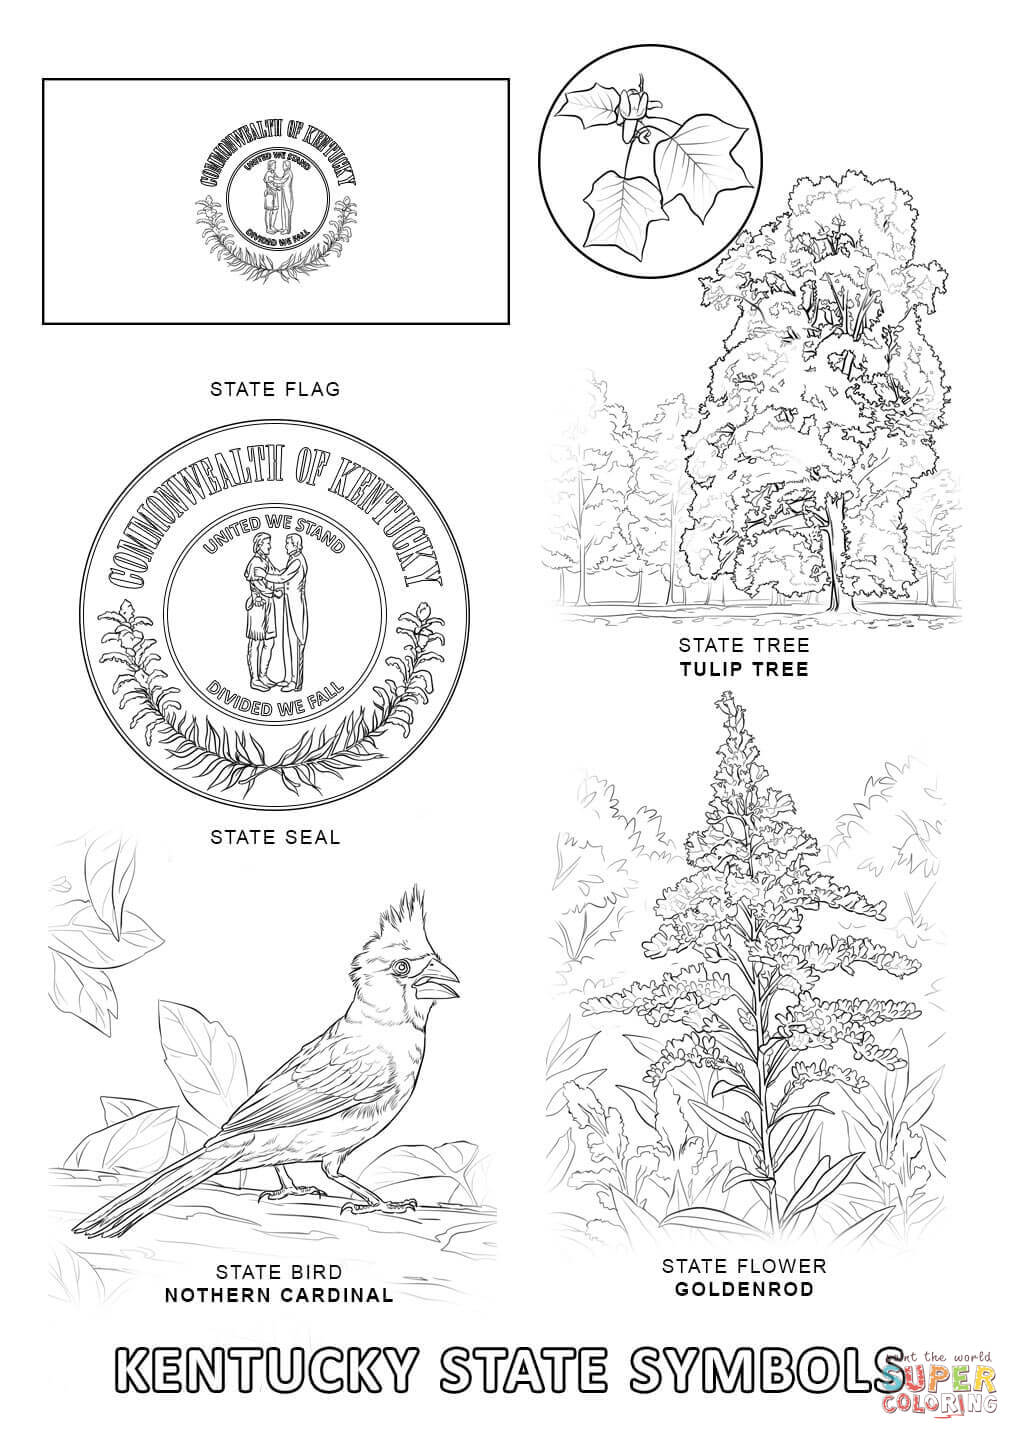 1020x1440 Kentucky State Symbols Coloring Page Free Printable Pages